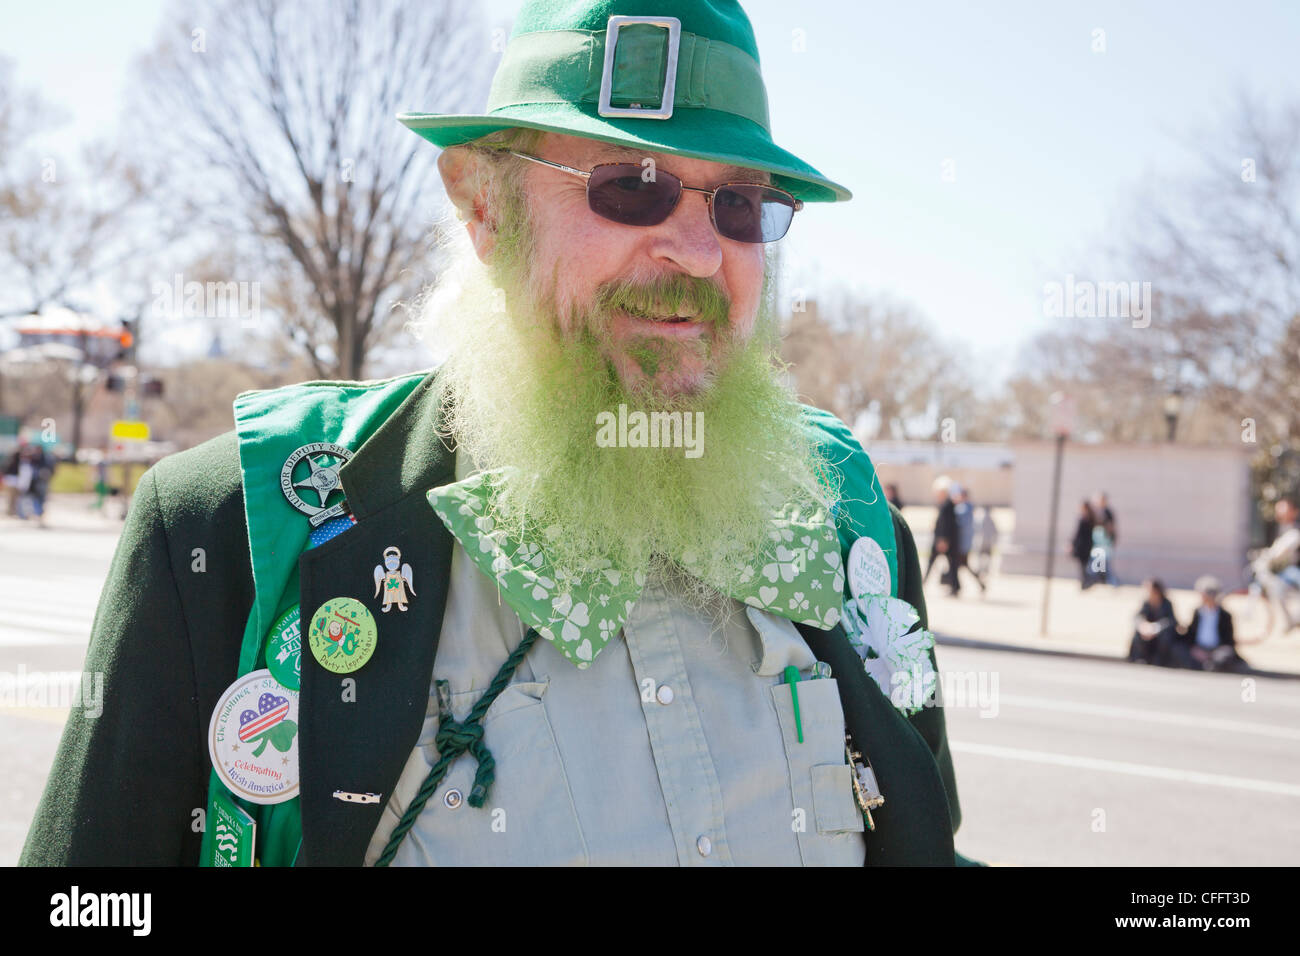 An elderly man with a green beard at a St. Patrick's Day parade - Stock Image